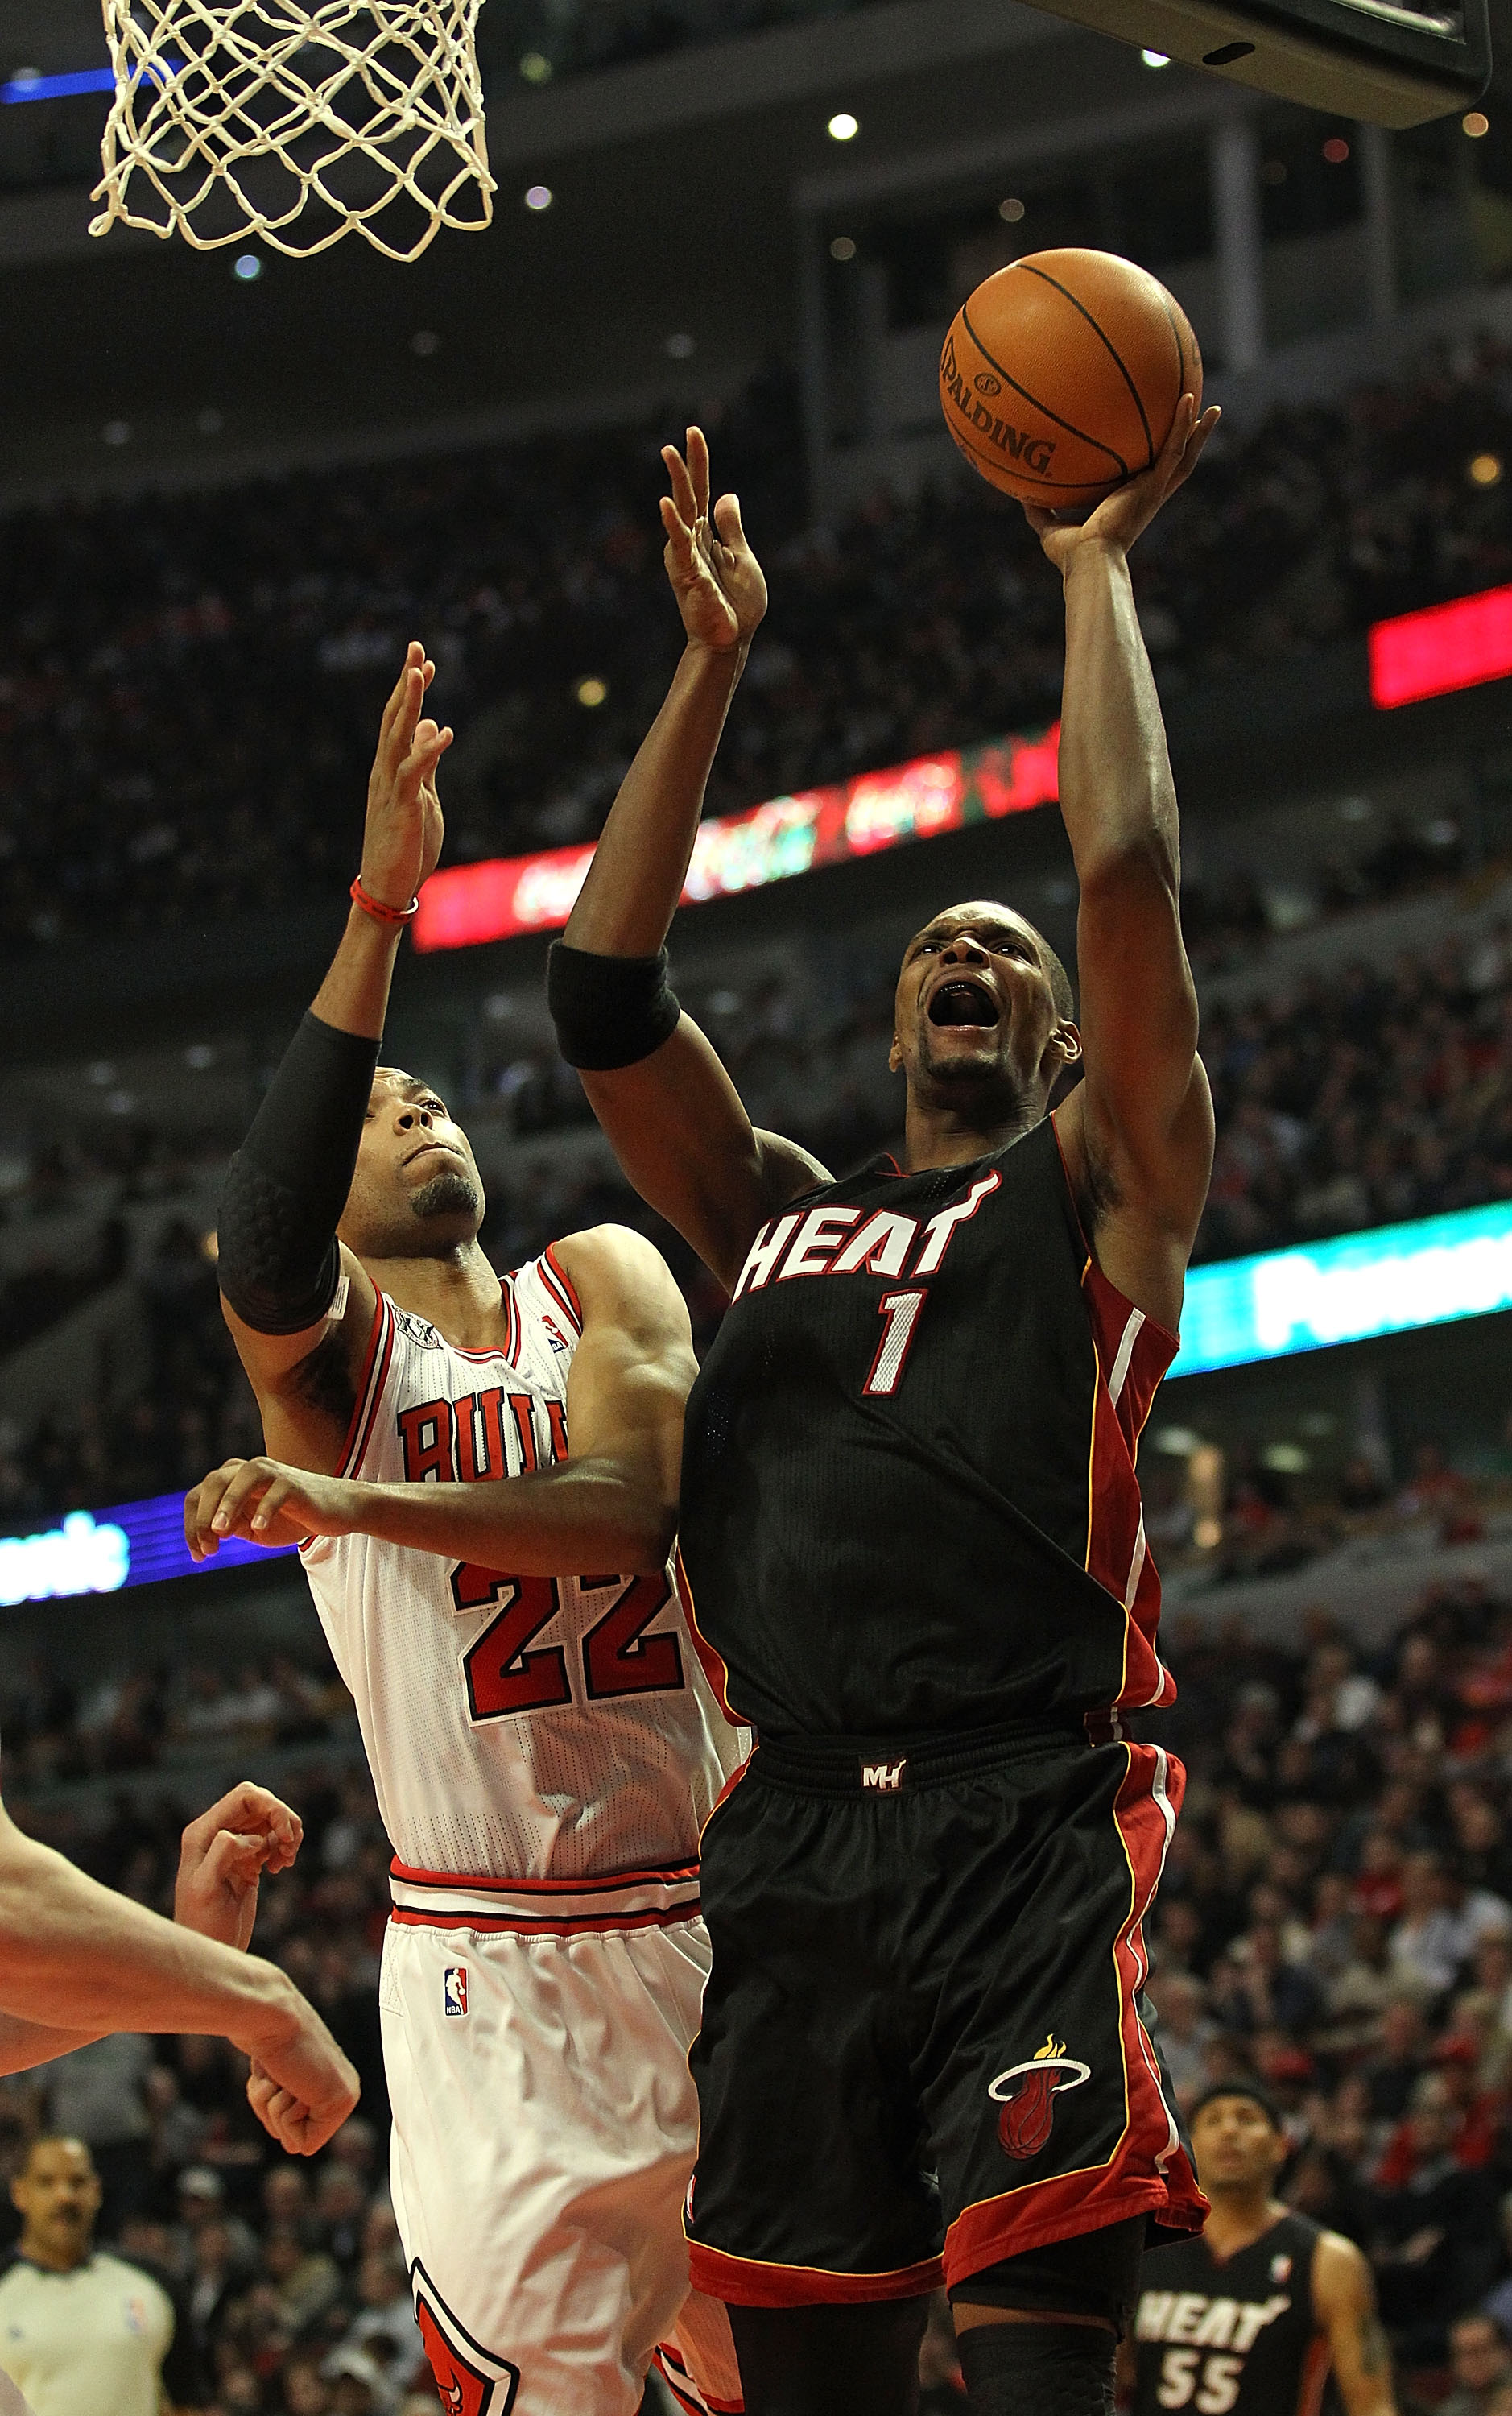 CHICAGO, IL - FEBRUARY 24: Chris Bosh #1 of the Miami Heat puts up a shot under pressure from Taj Gibson #22 of the Chicago Bulls at the United Center on February 24, 2011 in Chicago, Illinois. NOTE TO USER: User expressly acknowledges and agrees that, by